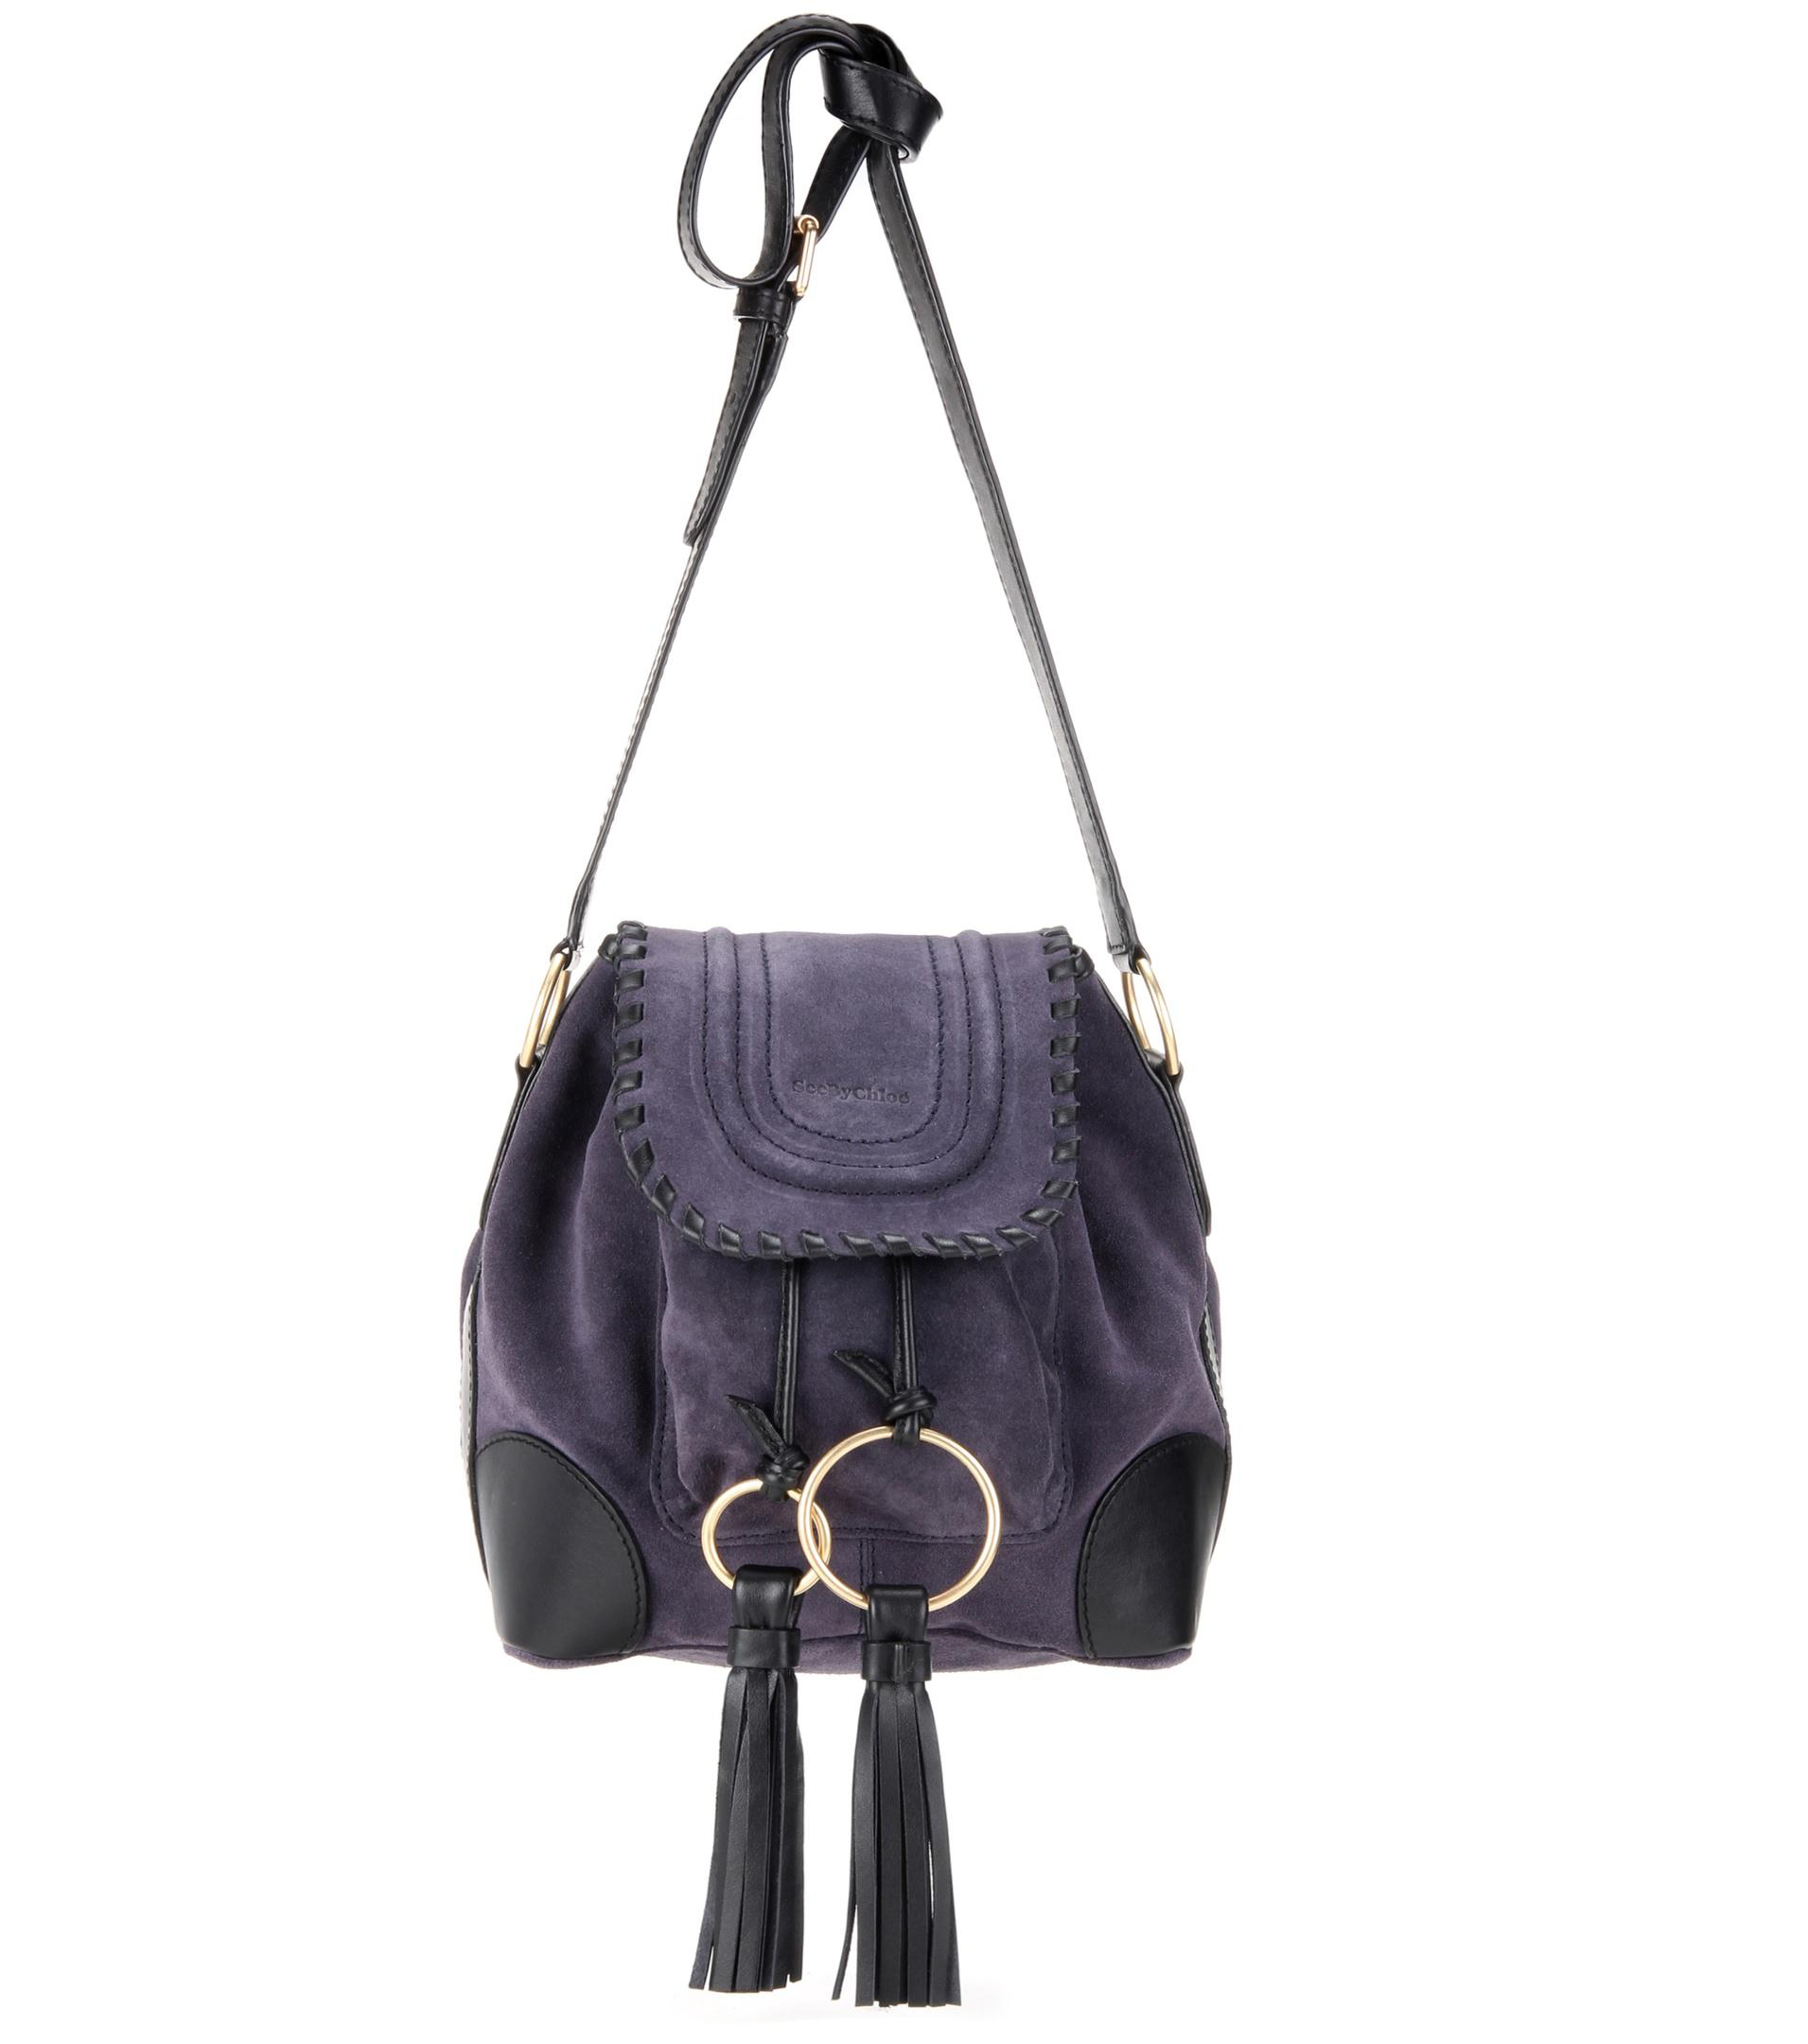 219f9c364 See By Chloé Polly Suede Bucket Bag in Purple - Lyst